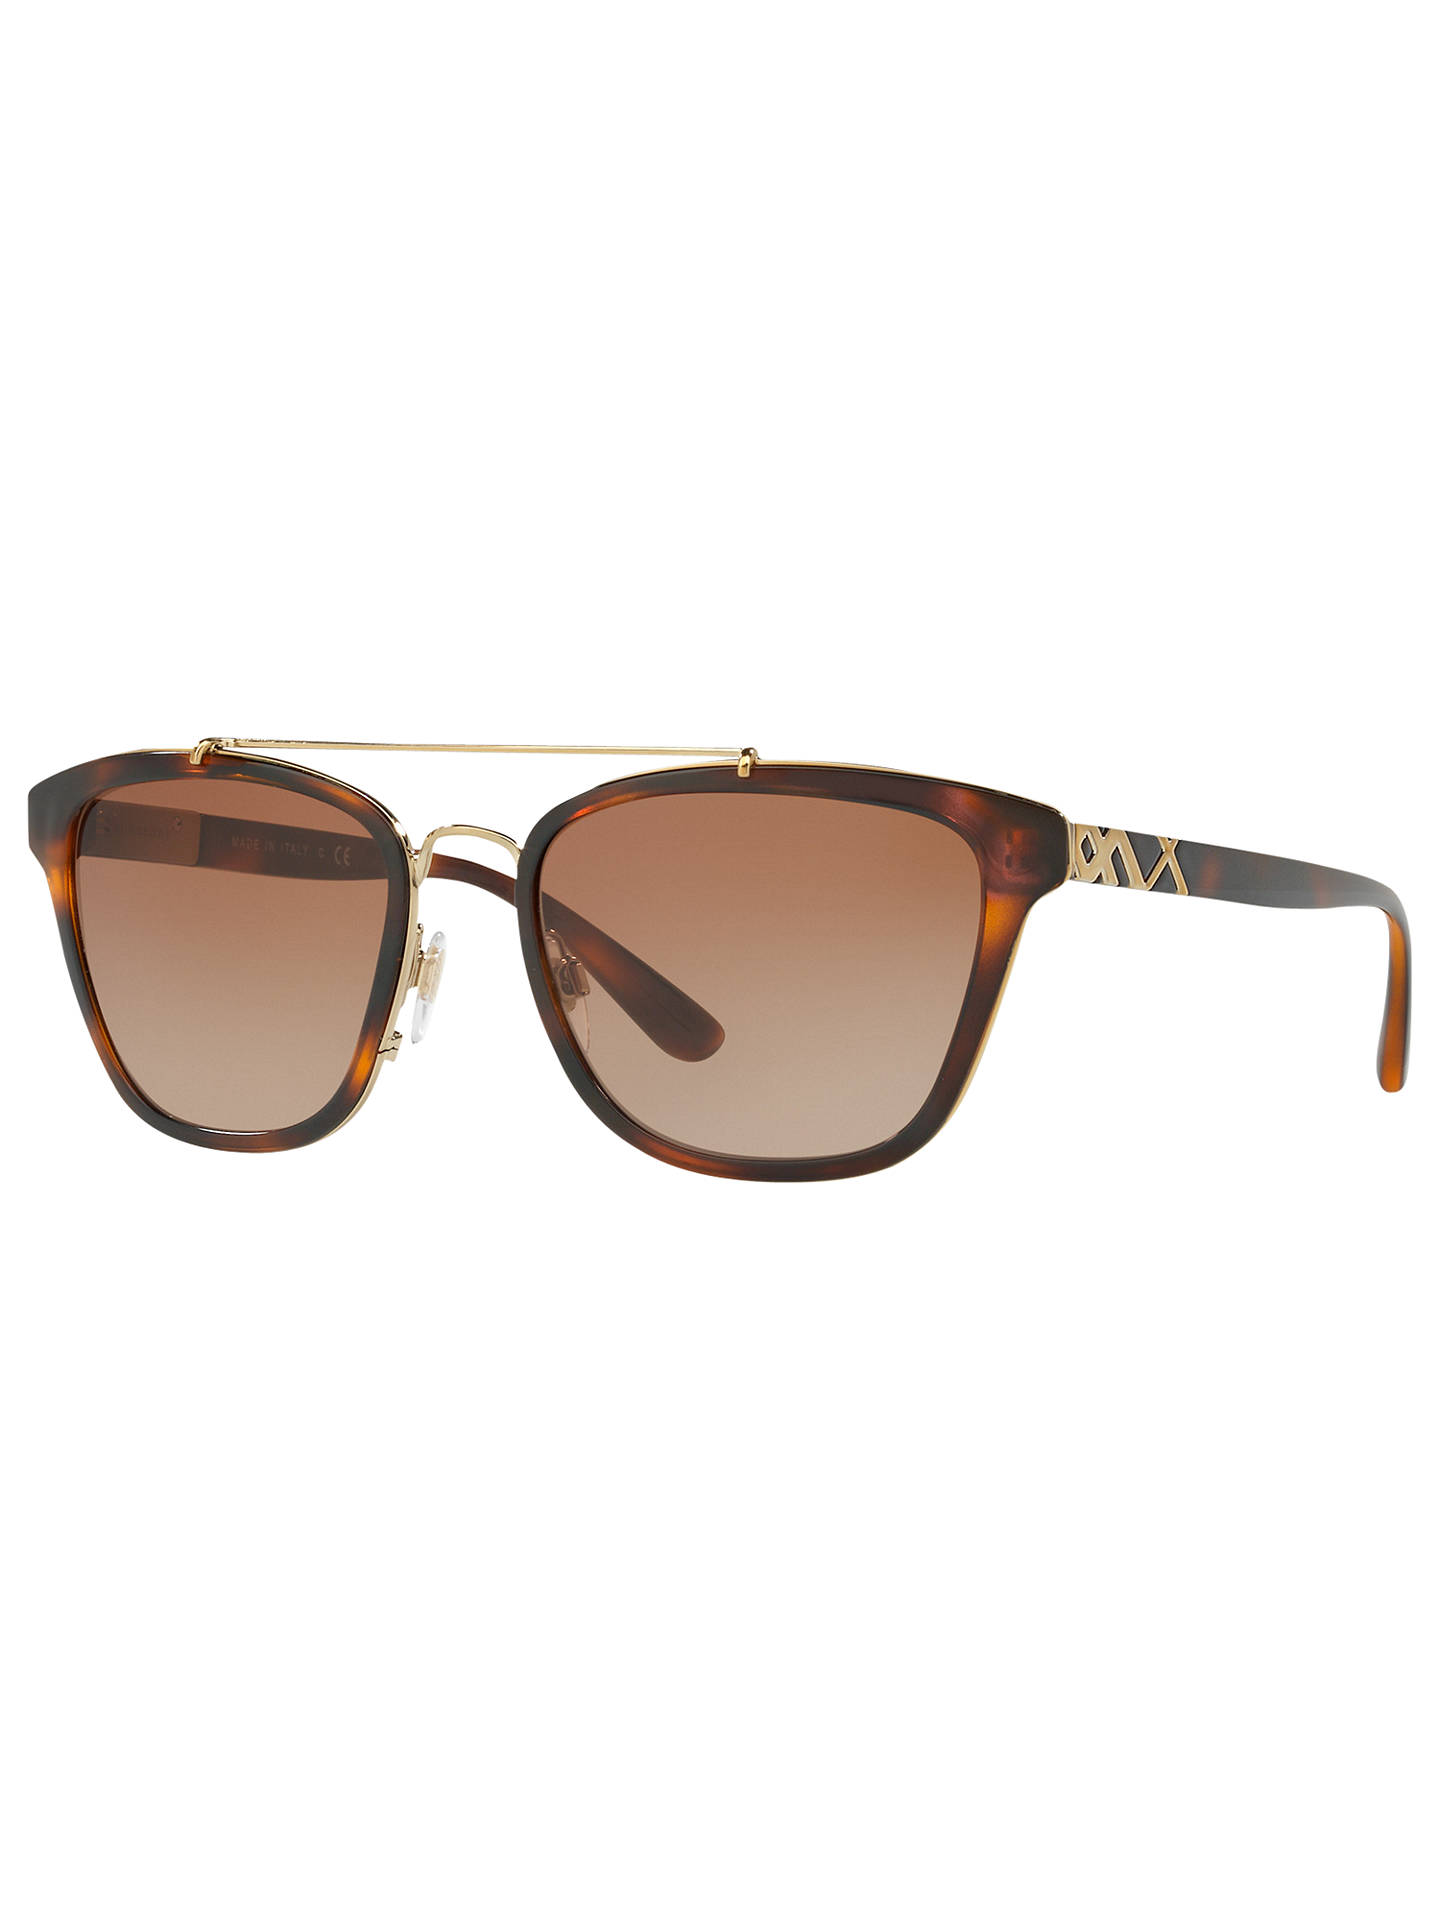 7bdcca04c7a Buy Burberry BE4240 D-Frame Sunglasses